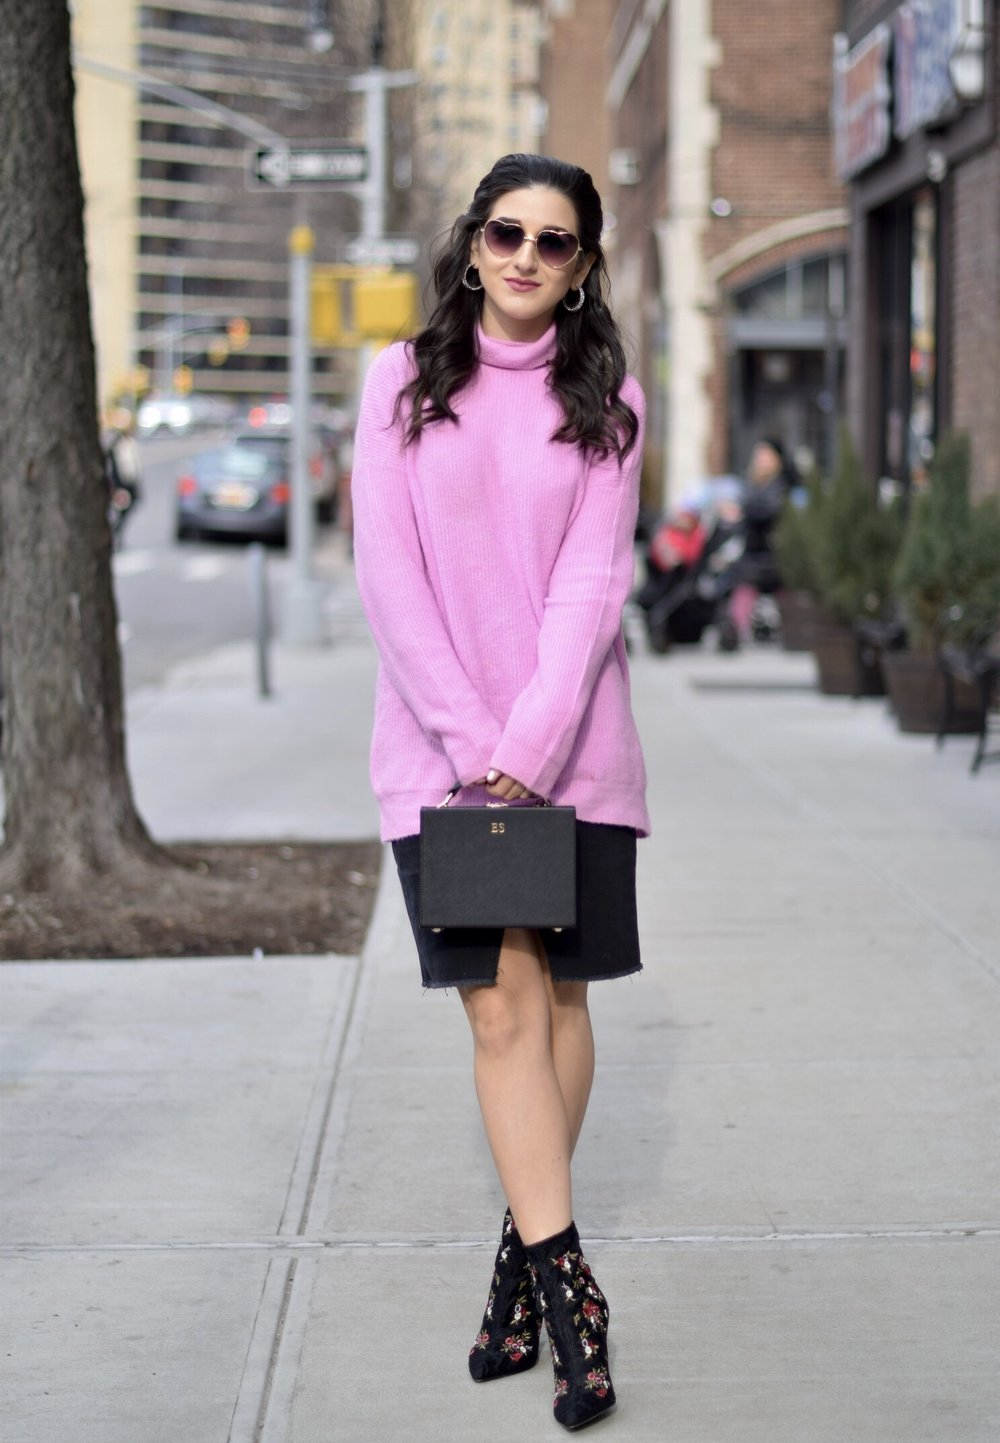 Surviving Winter With ASOS 5 Hardest Parts Of Blogging Esther Santer Fashion Blog NYC Street Style Blogger Outfit OOTD Trendy Pink Sweater Black Denim Skirt Box Bag Floral Booties Betsey Johnson Girl Women Purse Heart Sunglasses  Booties Accesories.jpg